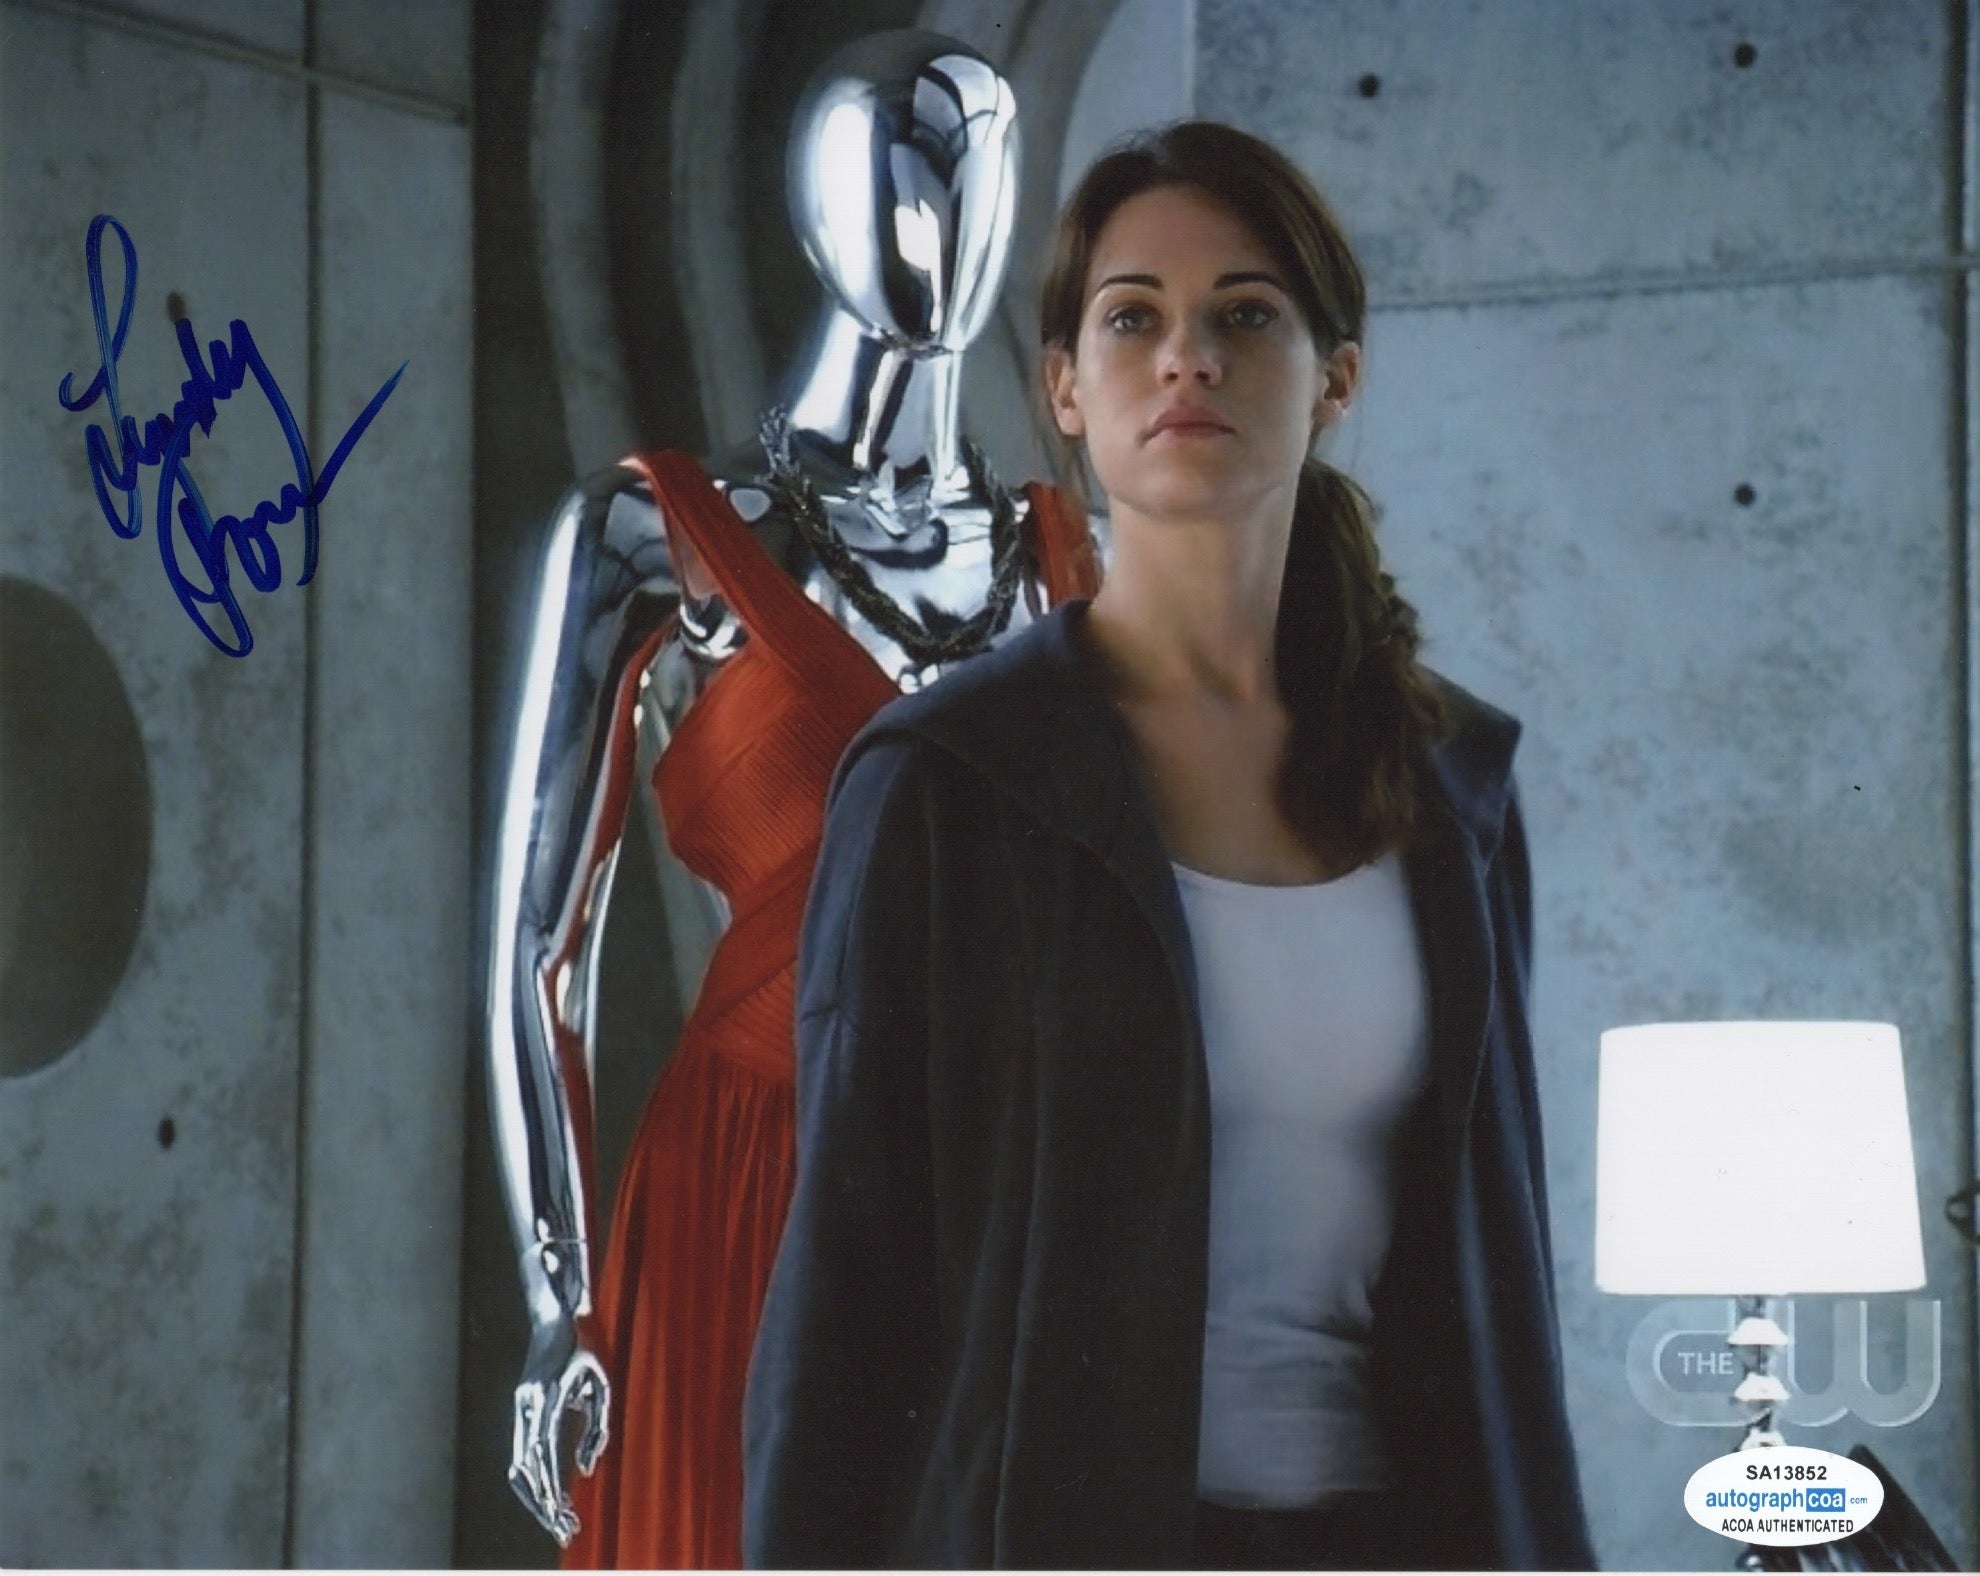 Lyndsy Fonseca Sexy Nikita Signed Autograph 8x10 Photo #7 - Outlaw Hobbies Authentic Autographs